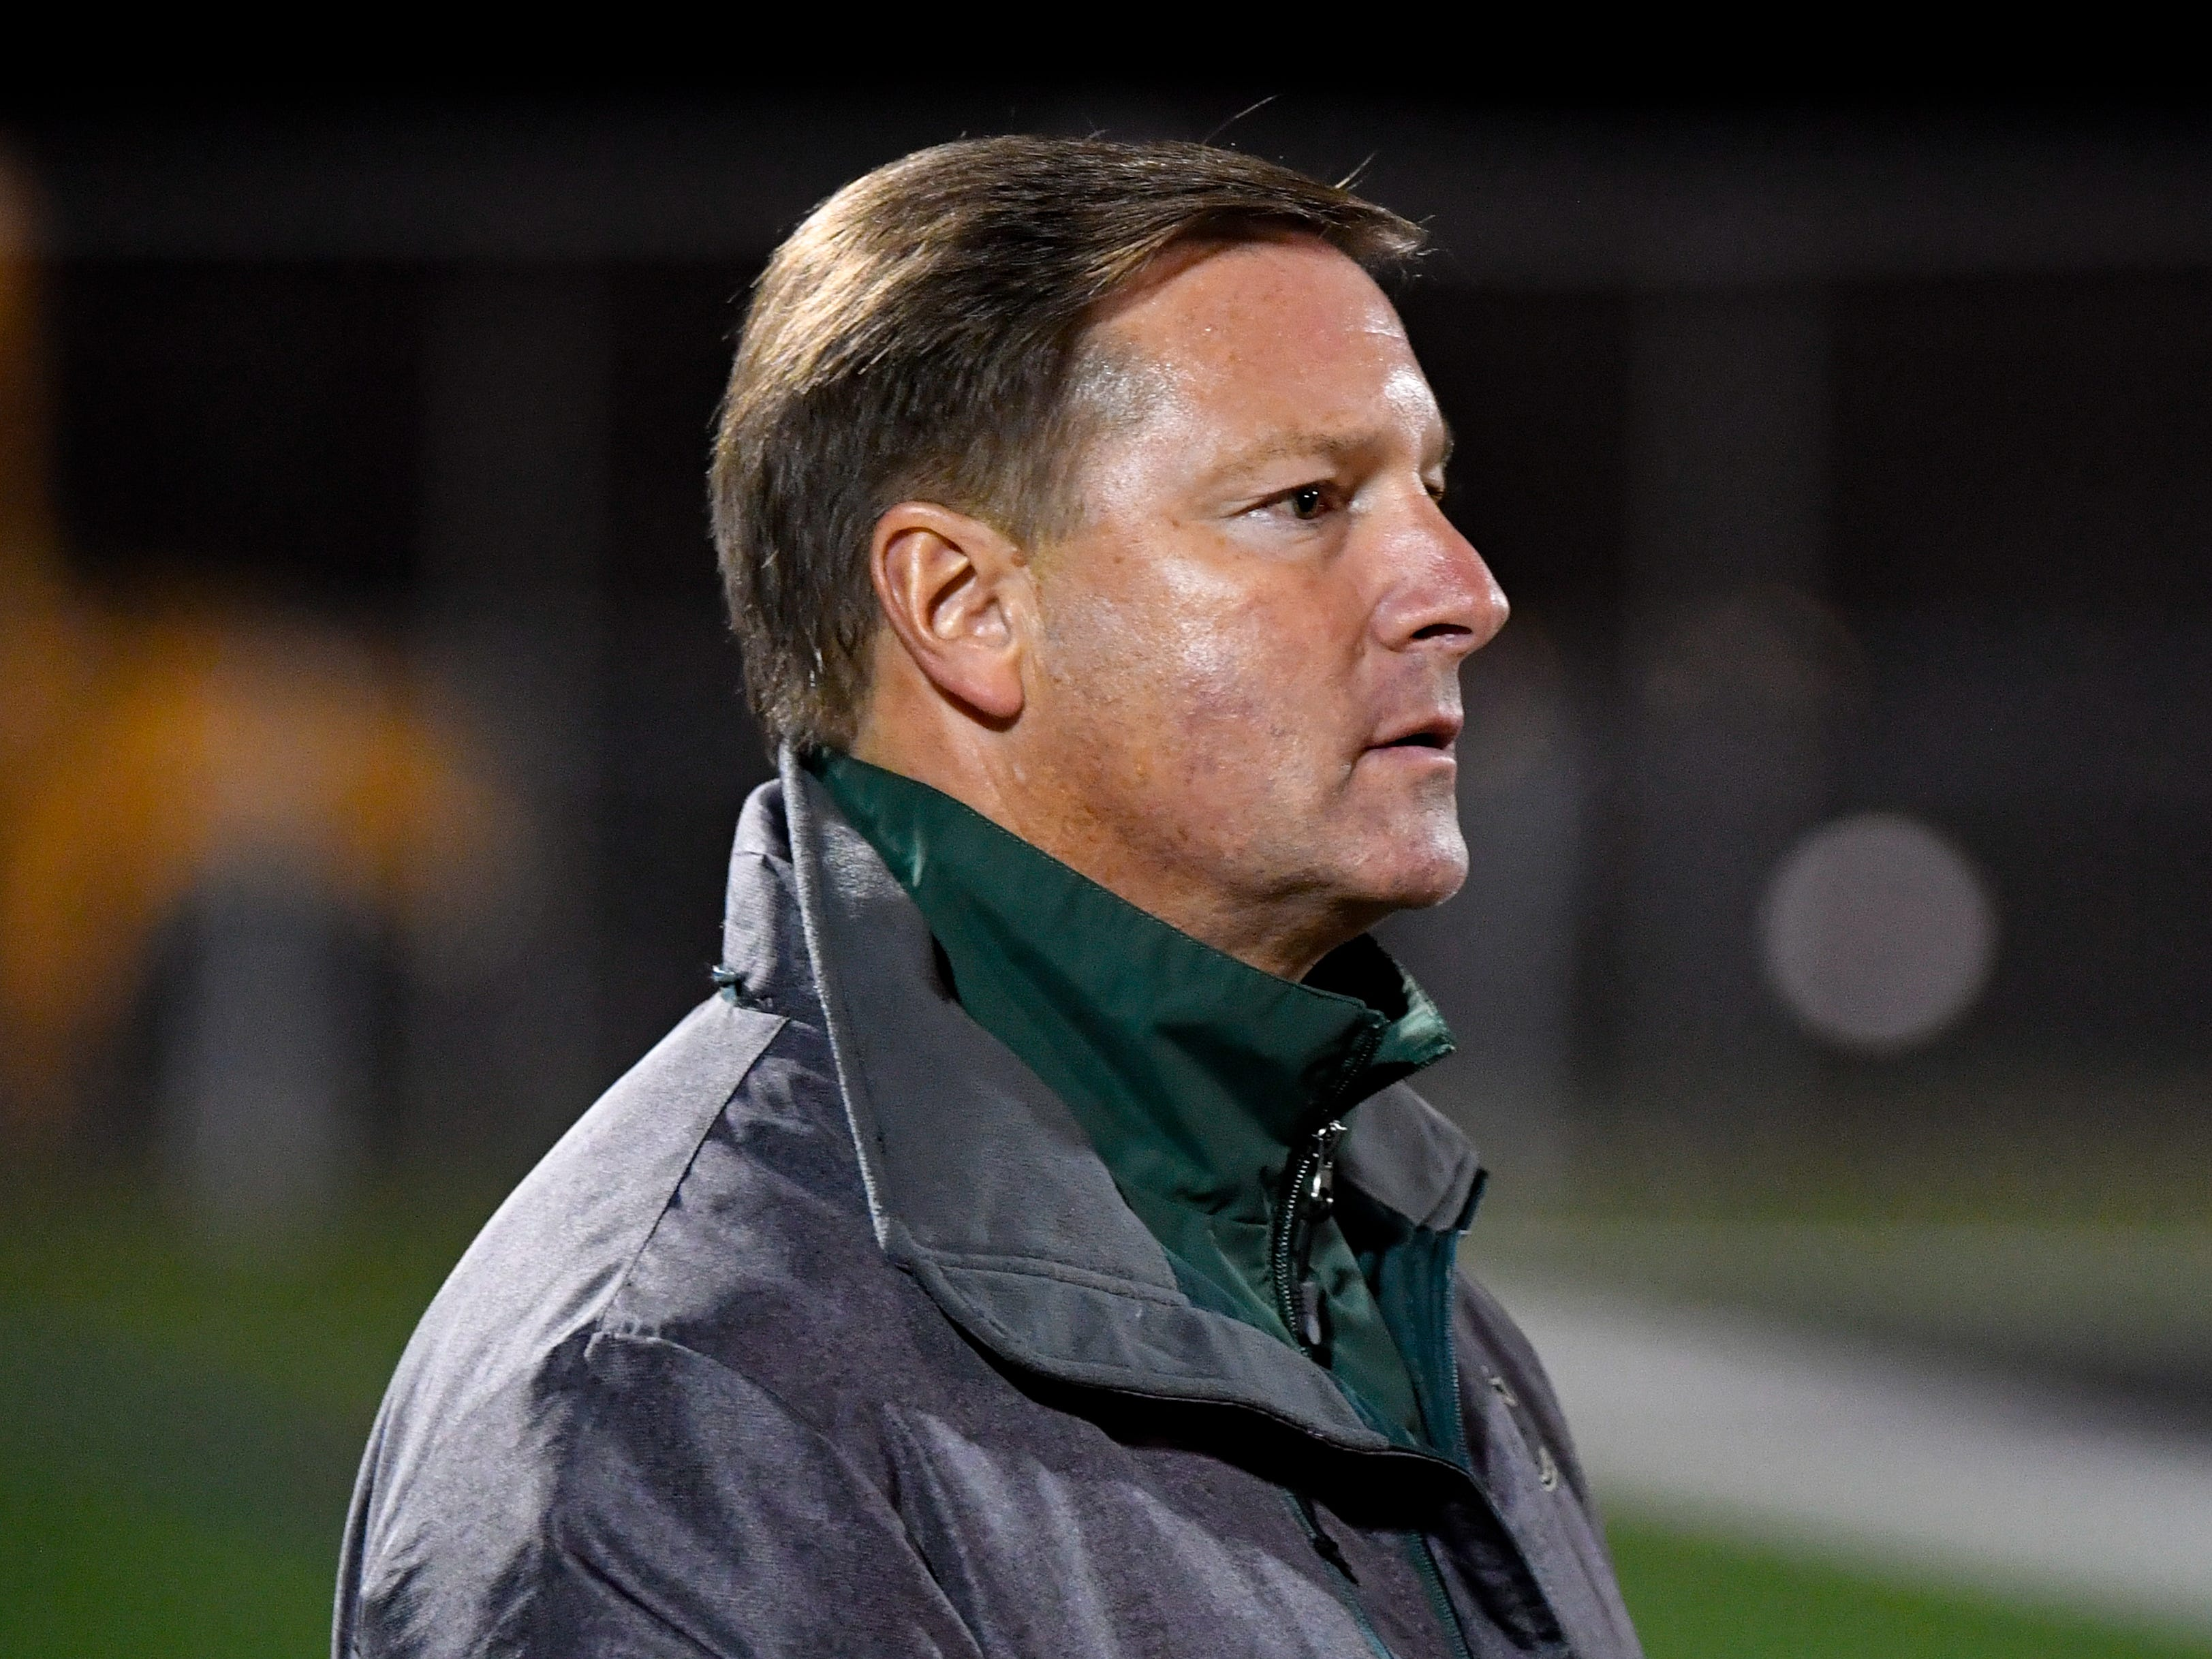 York Catholic coach Joe Nattans watches a free kick during the boys soccer game between South Western and York Catholic, October 16, 2018. The Mustangs beat the Irish 2-1.